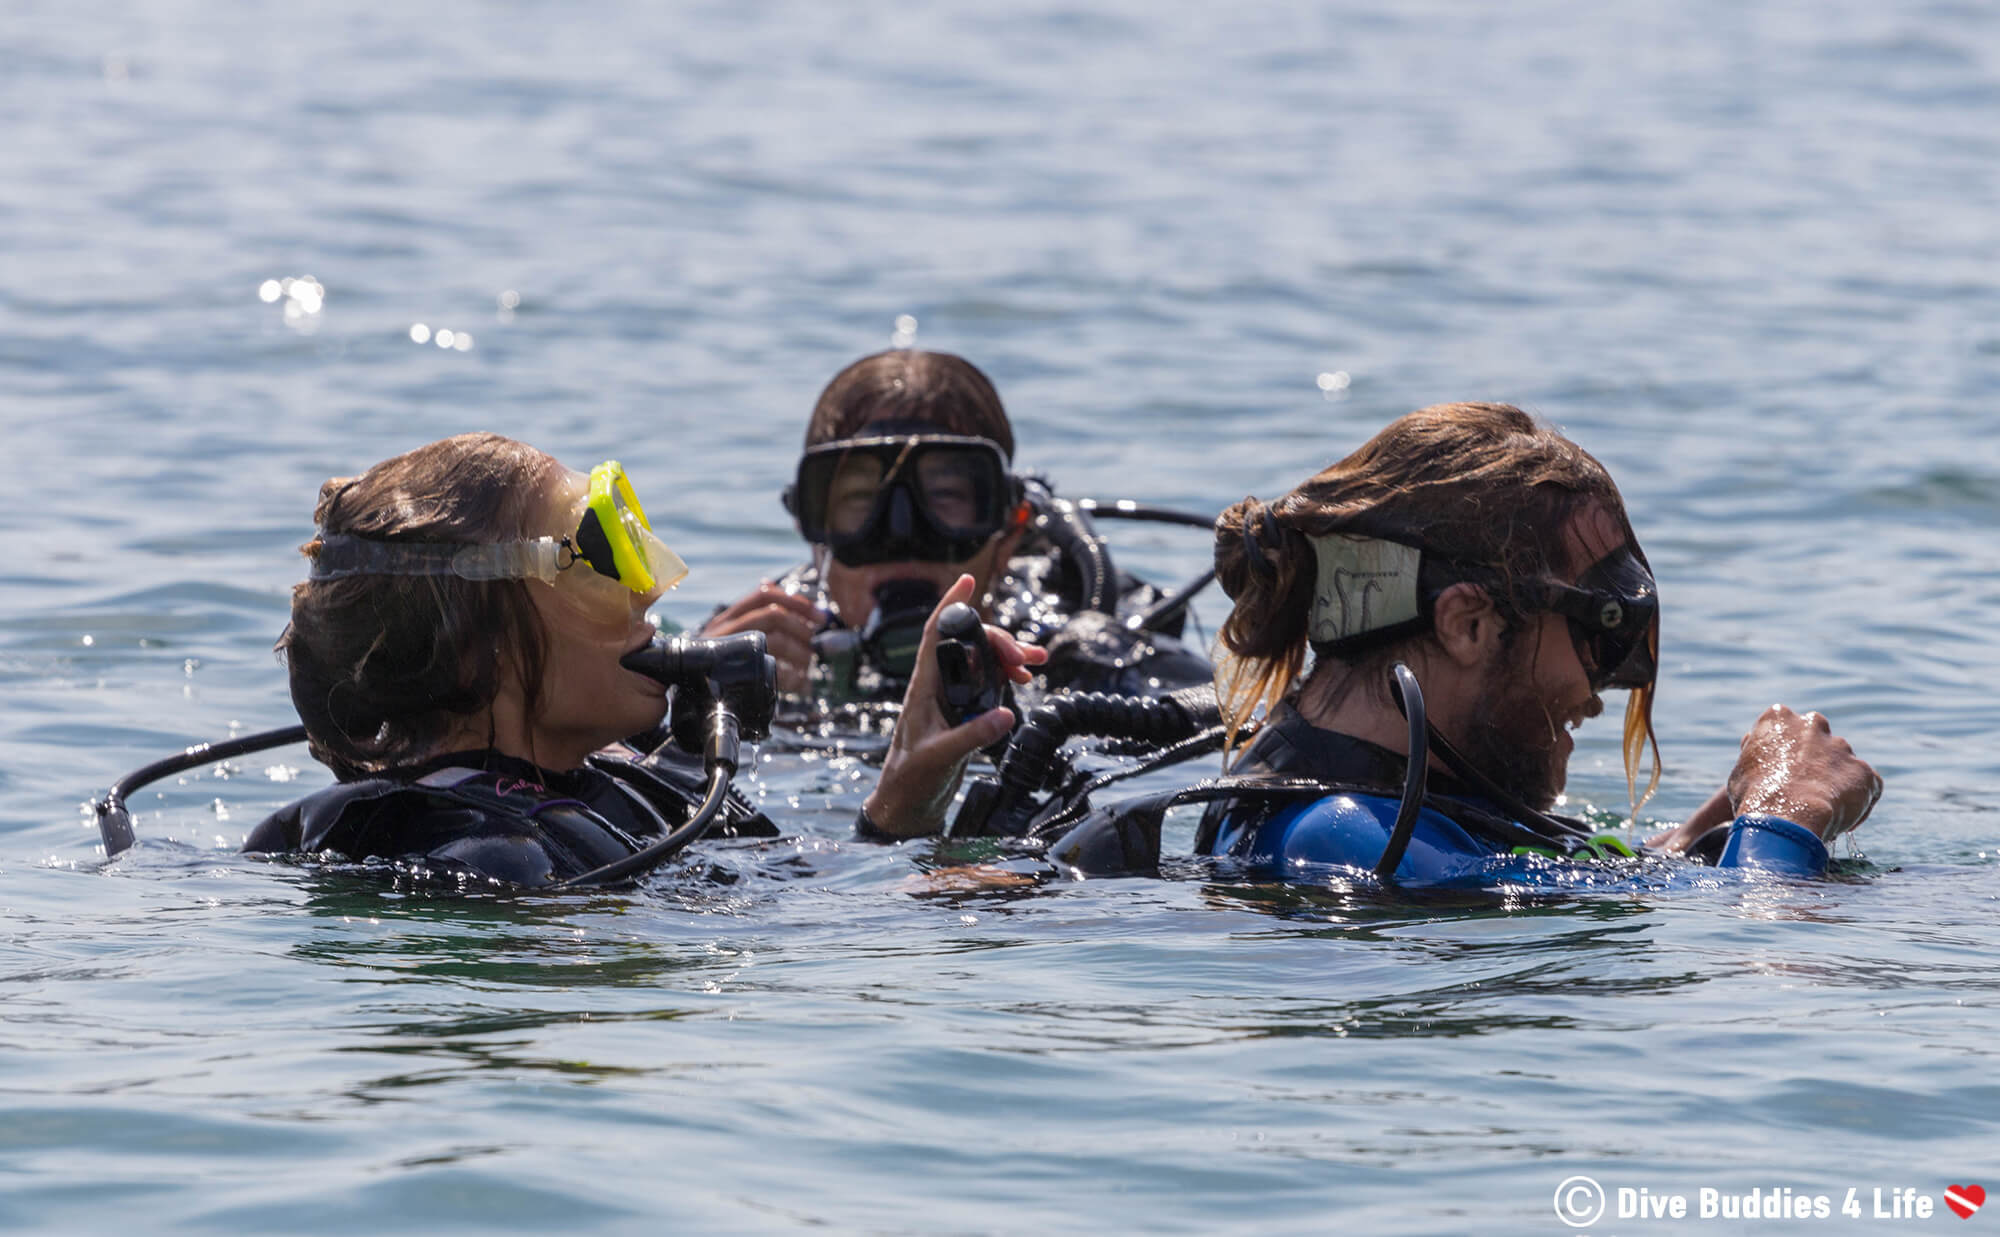 Two Rescue Scuba Divers Performing On Of The In Water Situations While A Dive Instructor Observes